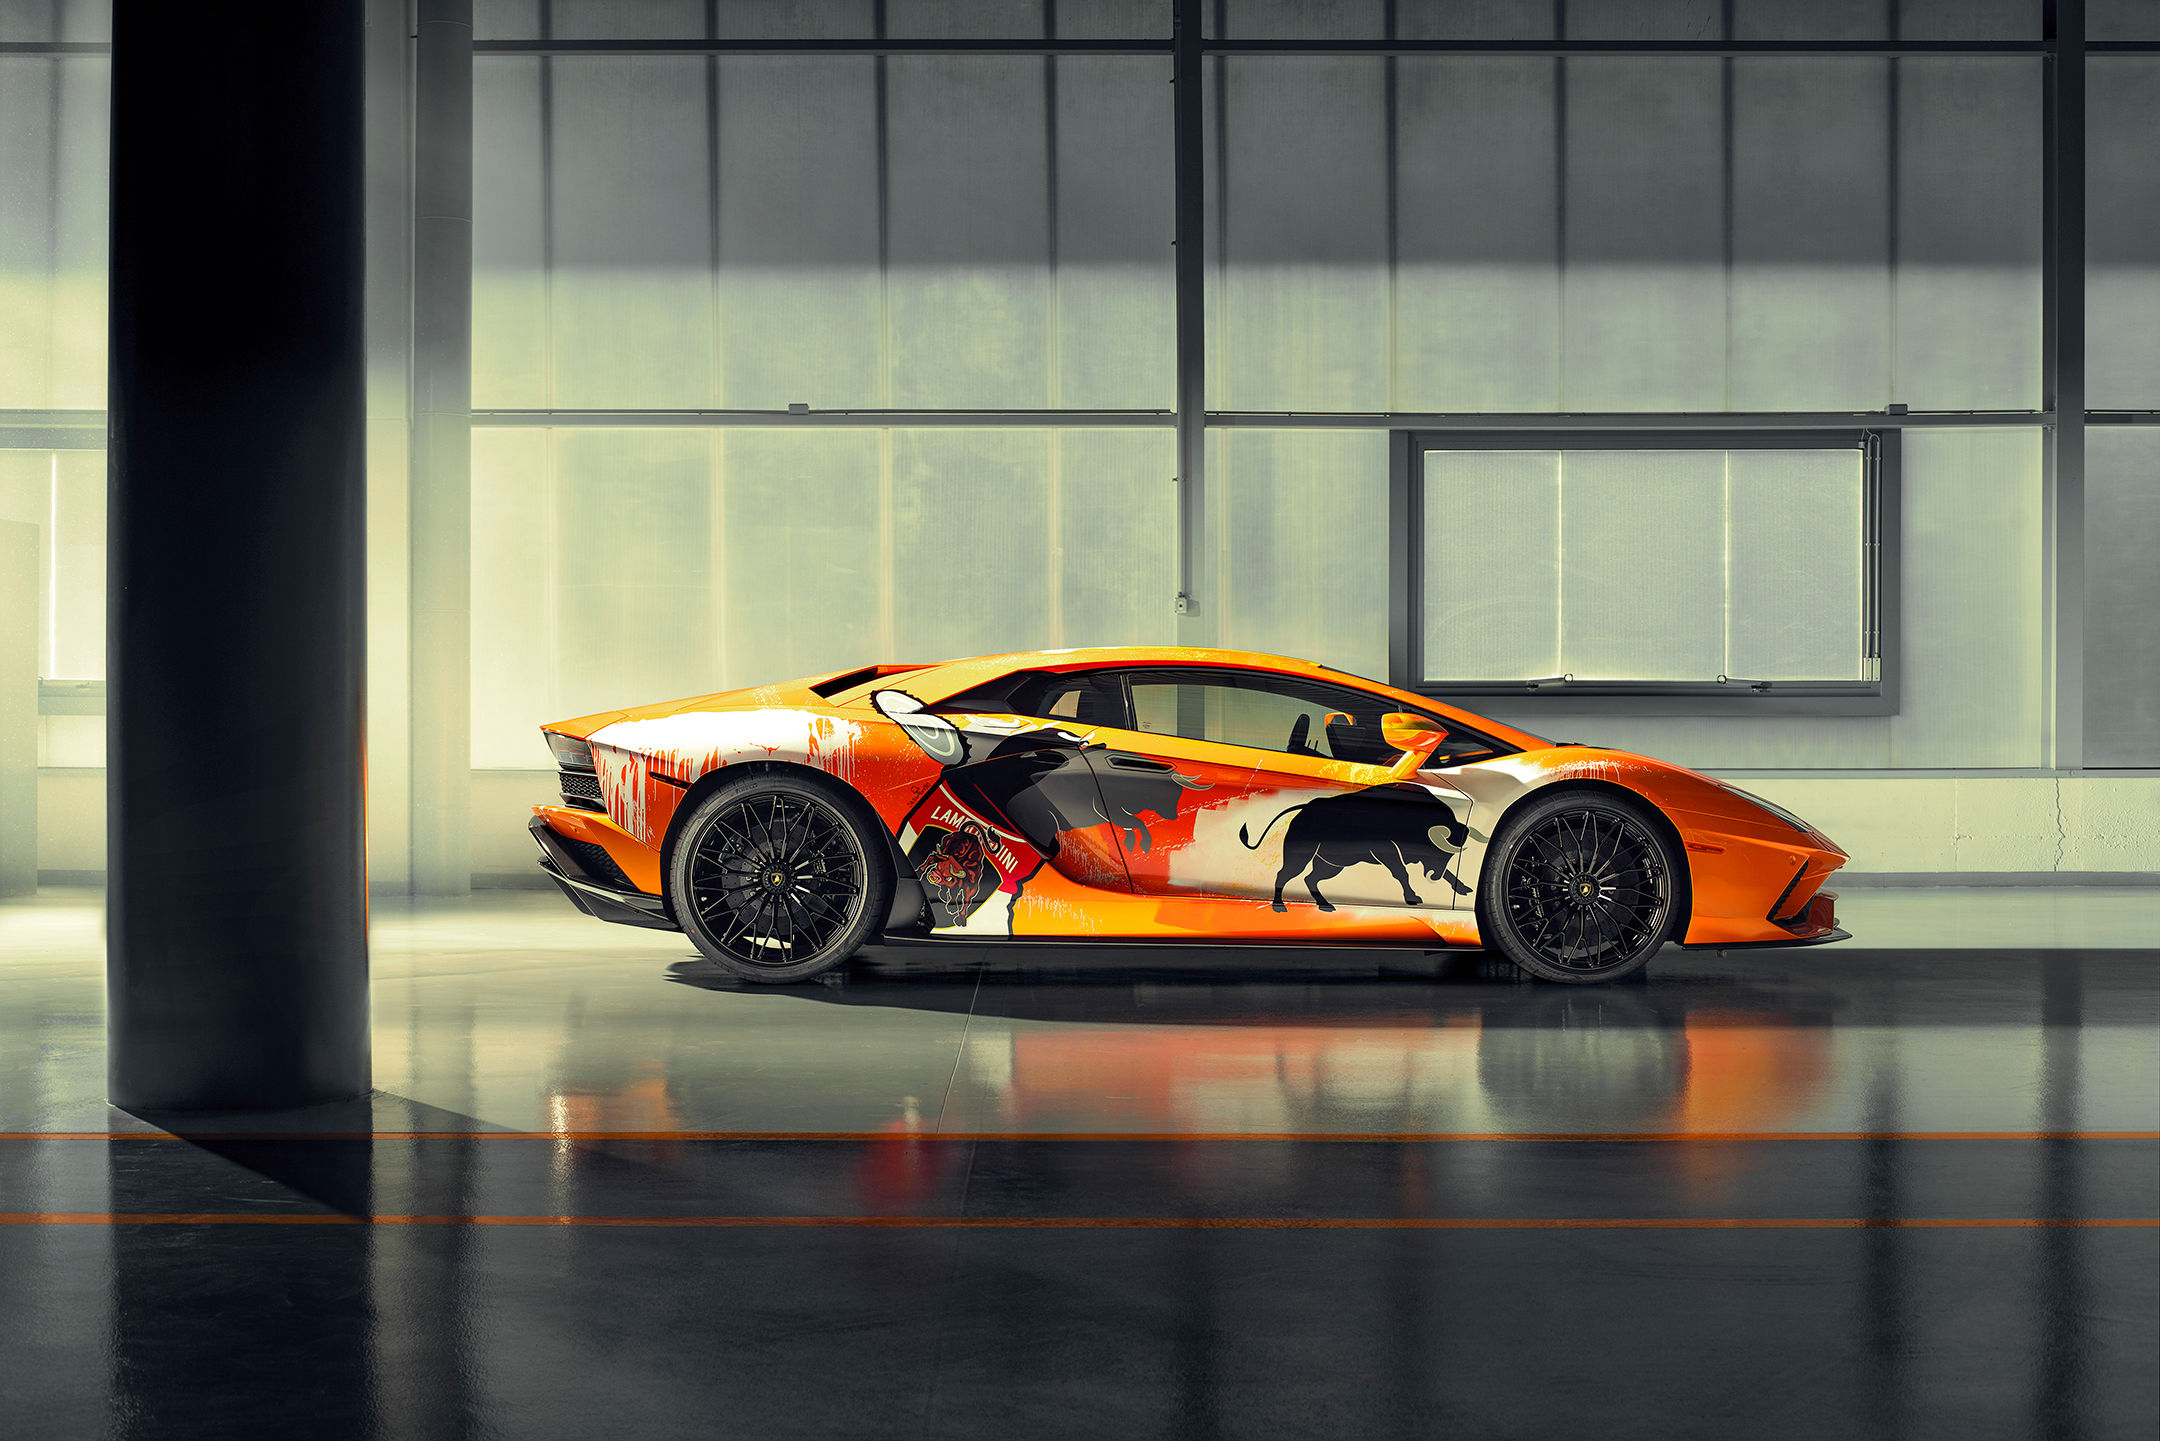 Lamborghini one-off Aventador S by Skyler Grey Art - 2019 - side-face right / profil droit